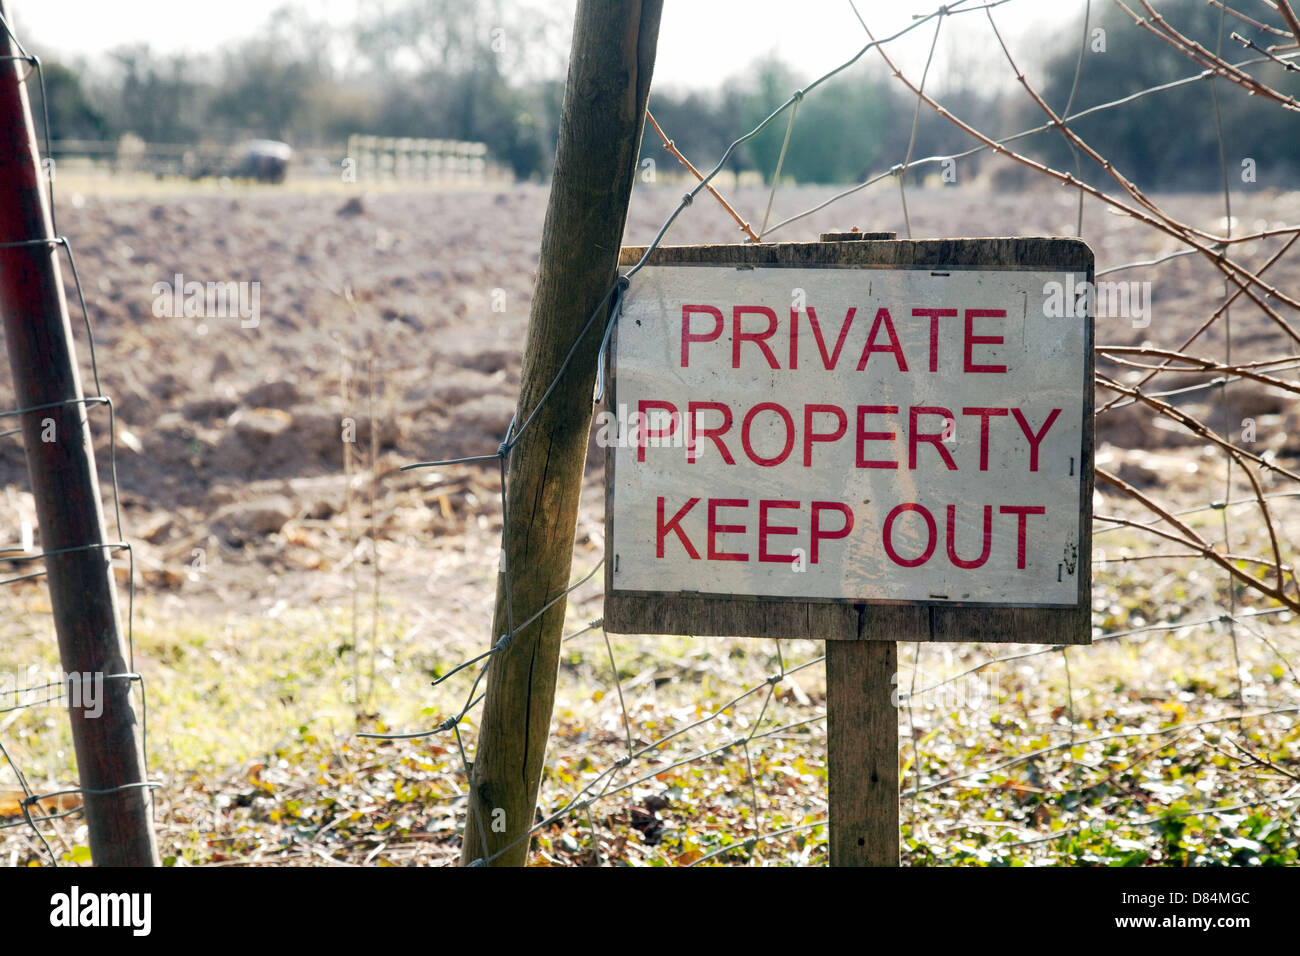 A Private Property Keep Out sign in Cambridgeshire countryside, UK - Stock Image